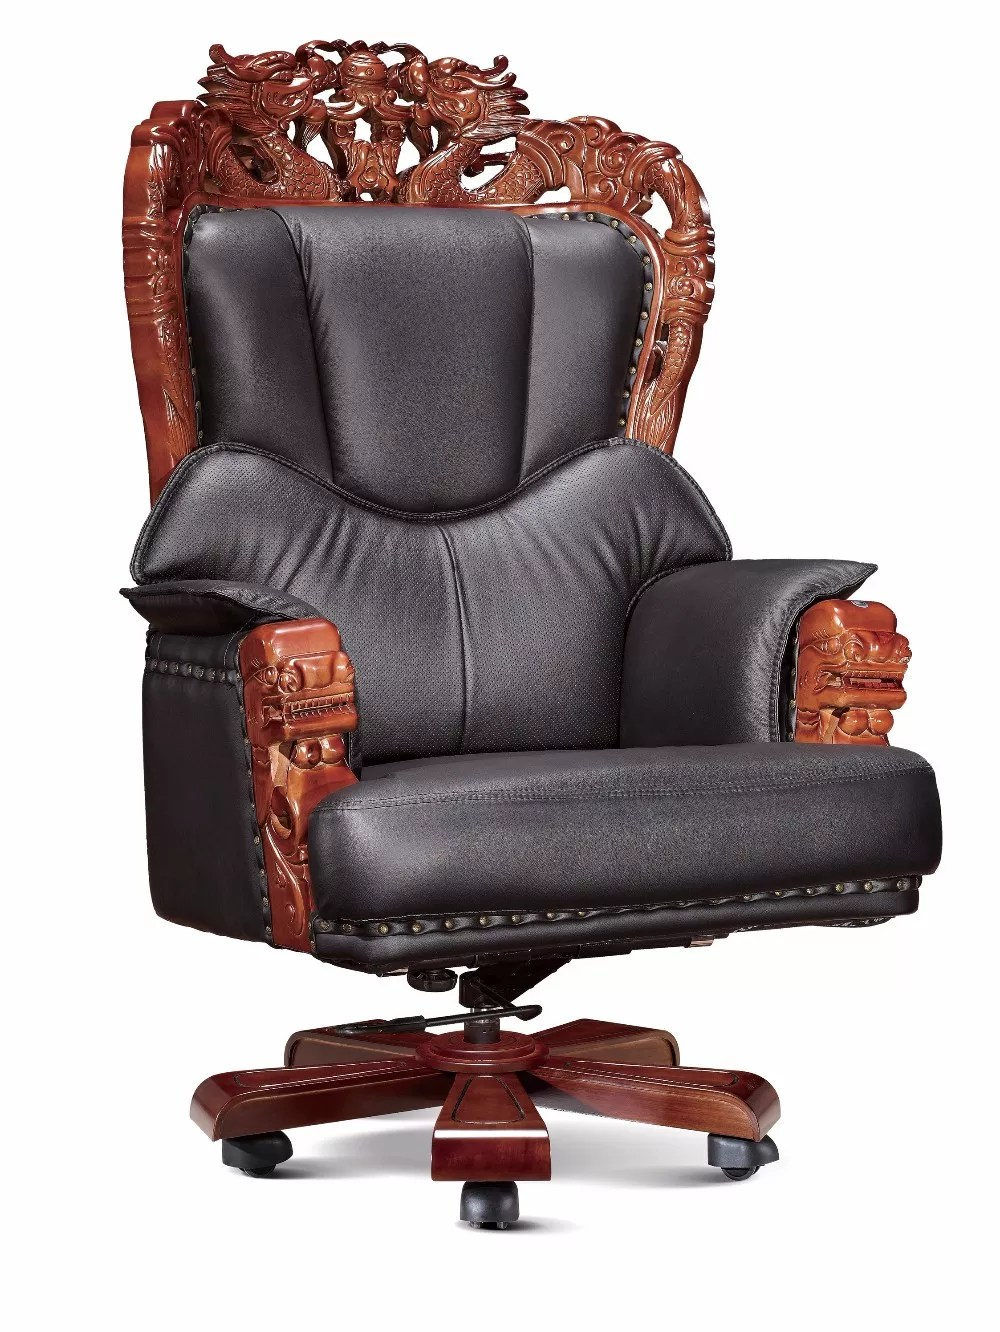 Deluxe Genuine Cowhide Furniture Swivel Executive Ceo Office Chair With Massage Function Buy Ceo Office Chair Genuine Leather Executive Chair Deluxe